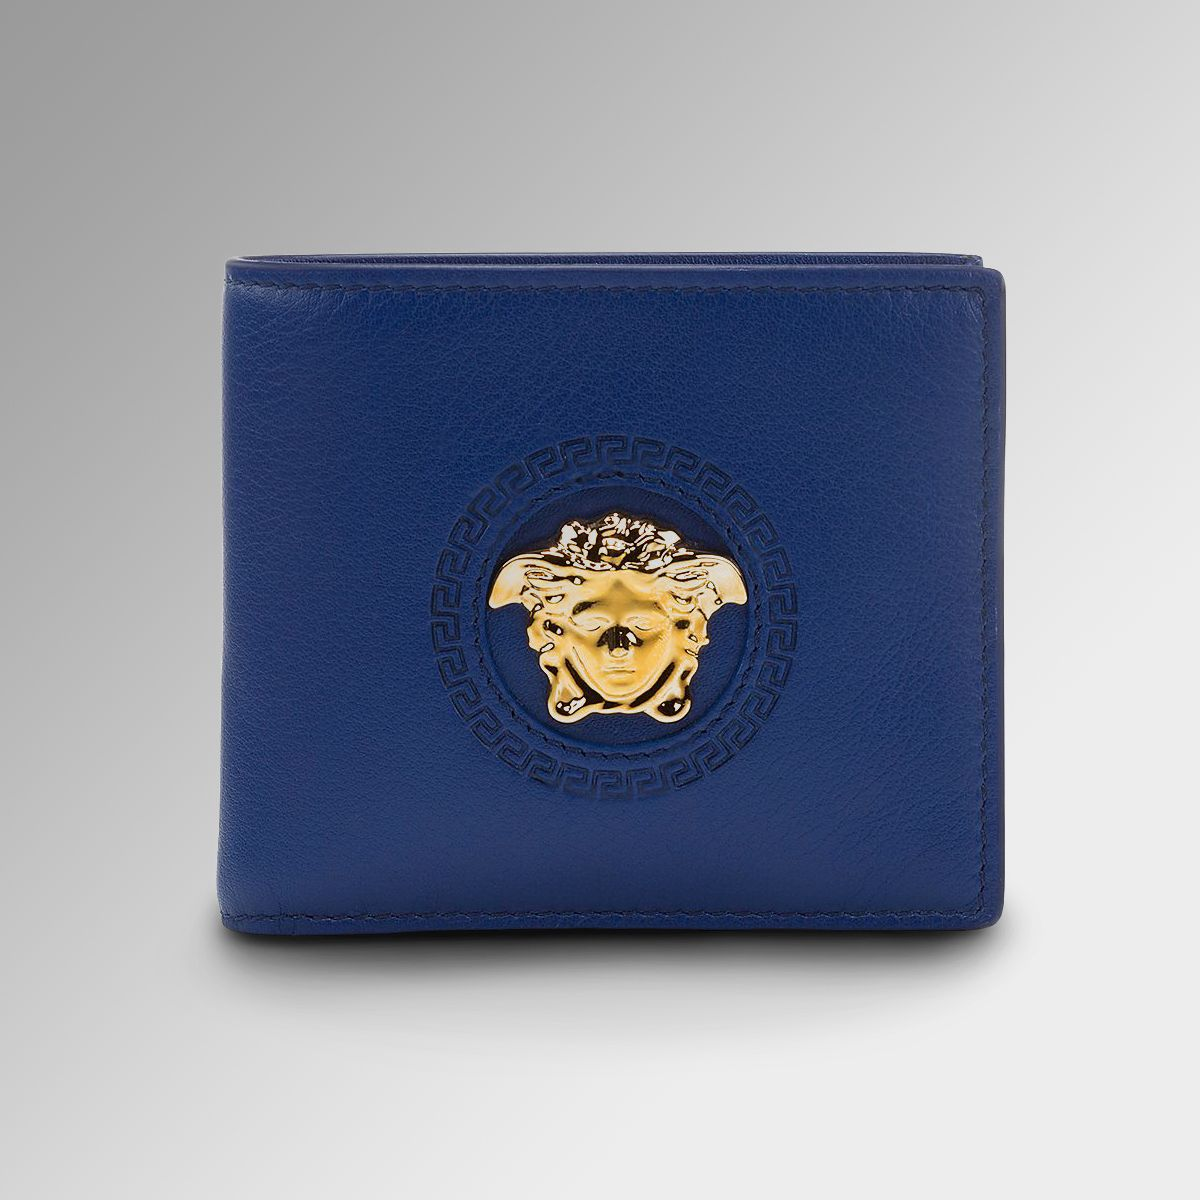 fef0b38a00 Created for stylish globetrotters. Get more #Versace Men's leather ...